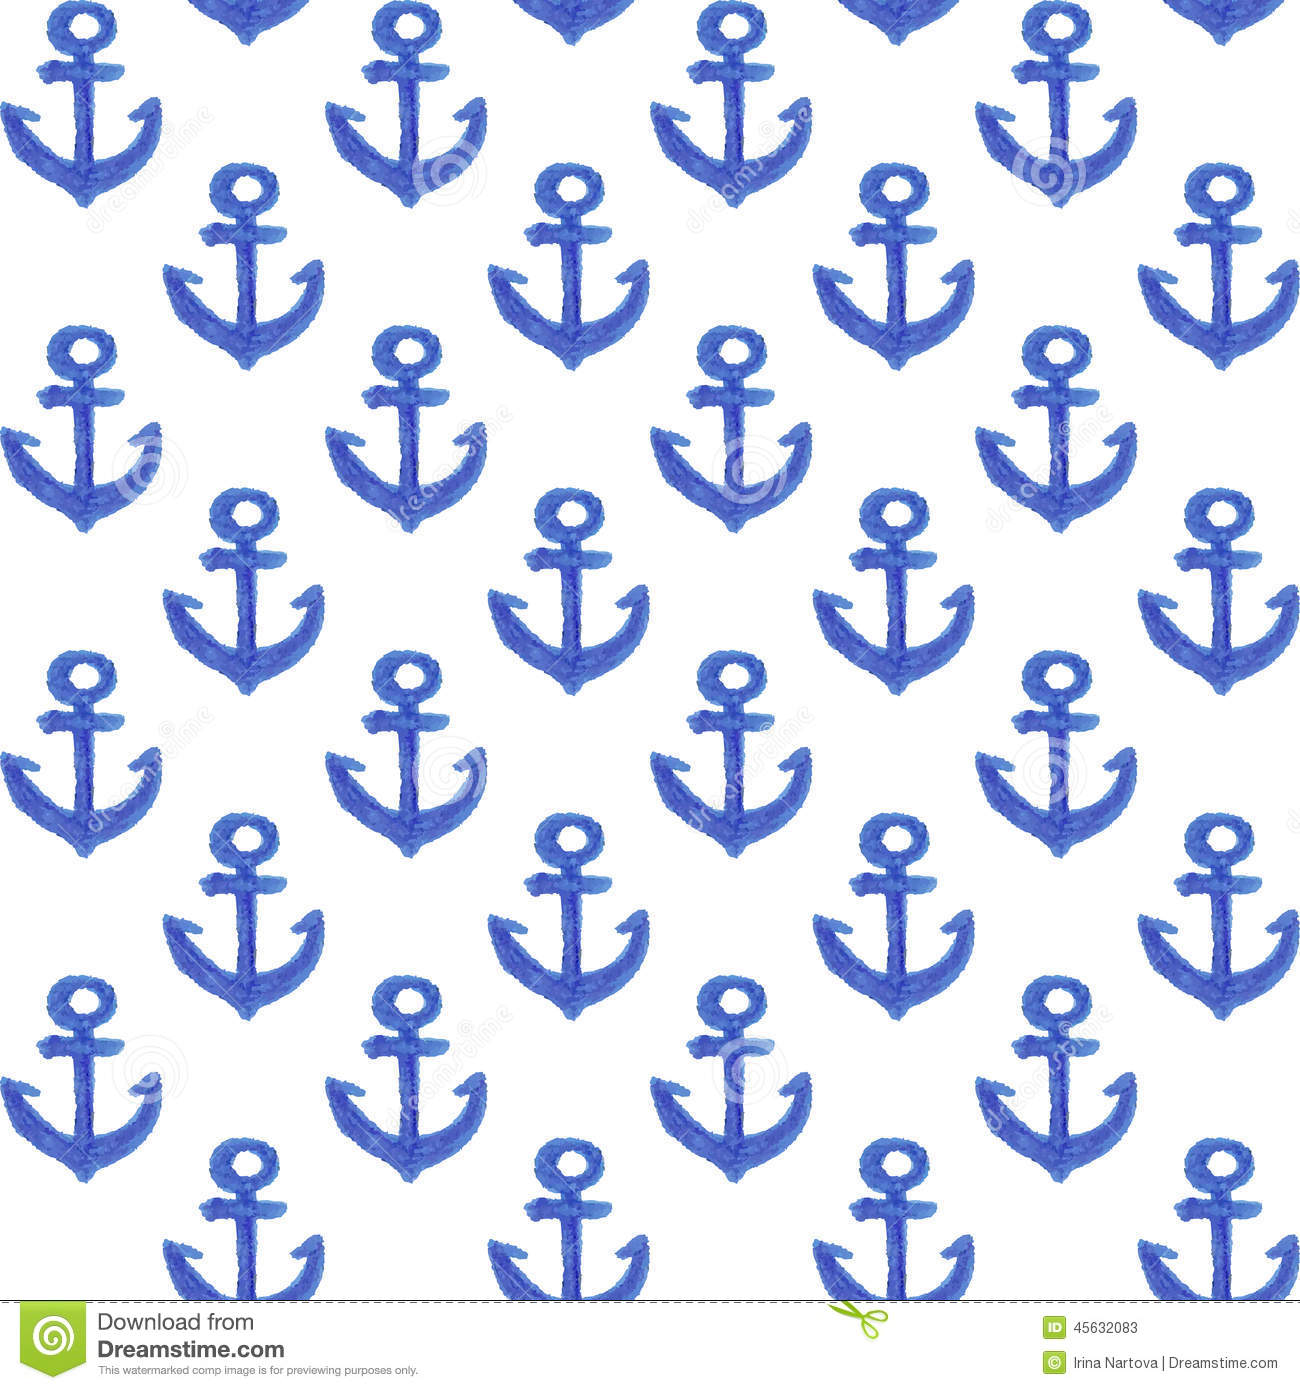 navy blue and white anchor wallpaper